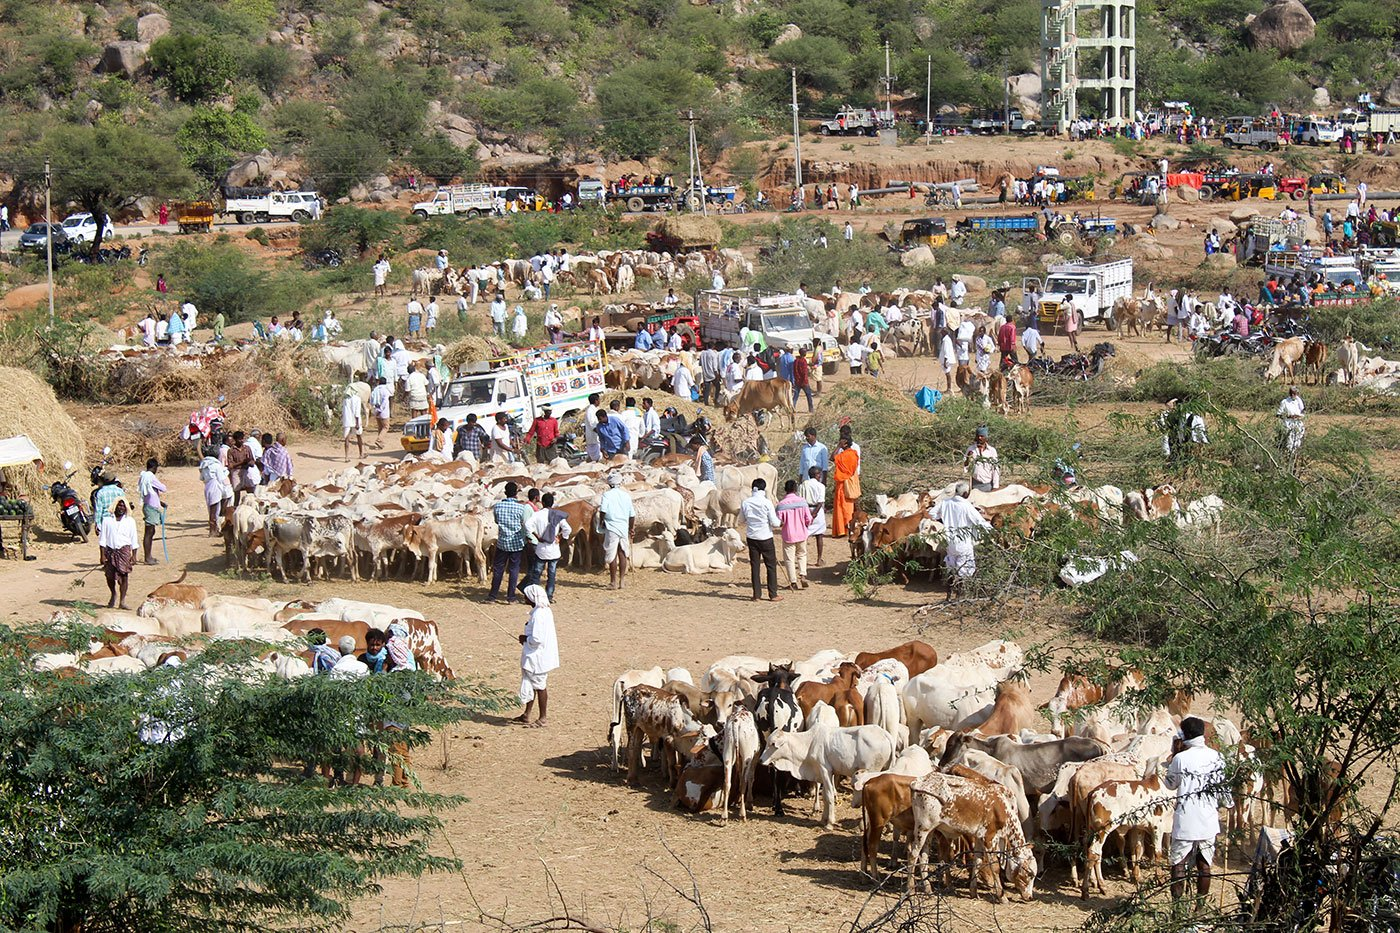 Herd of cattle, up for sale